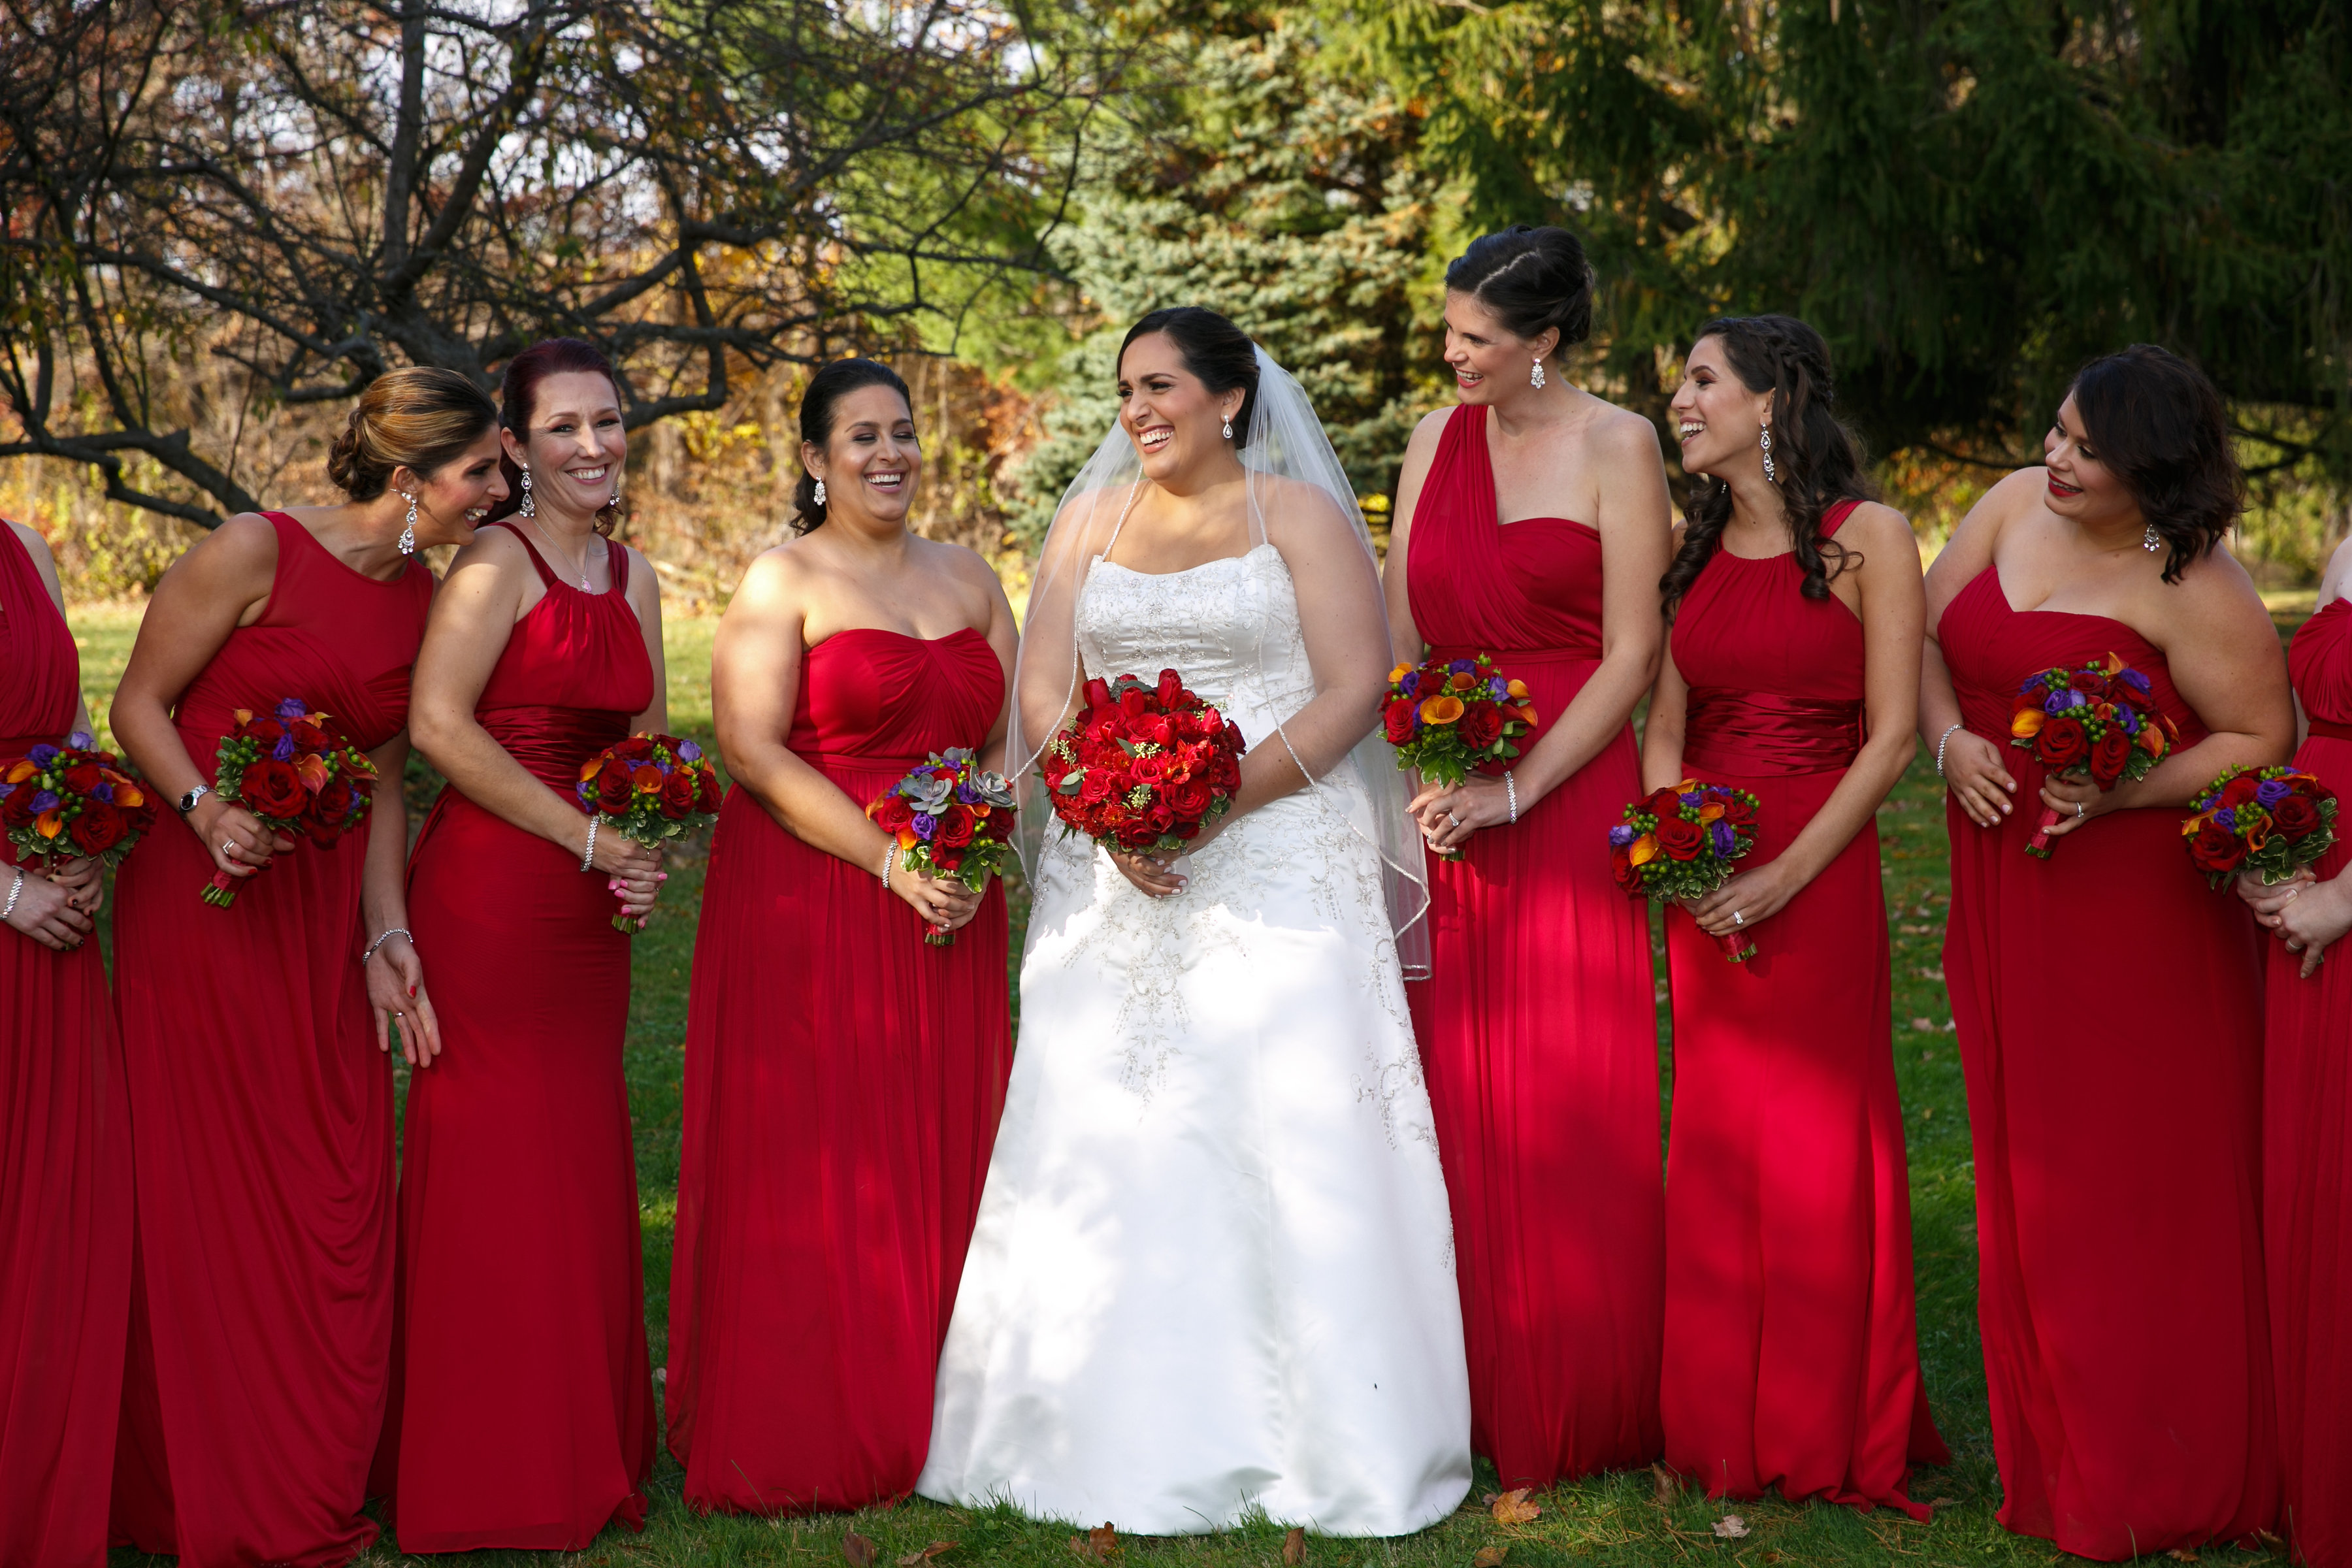 Maria and her bridesmaids